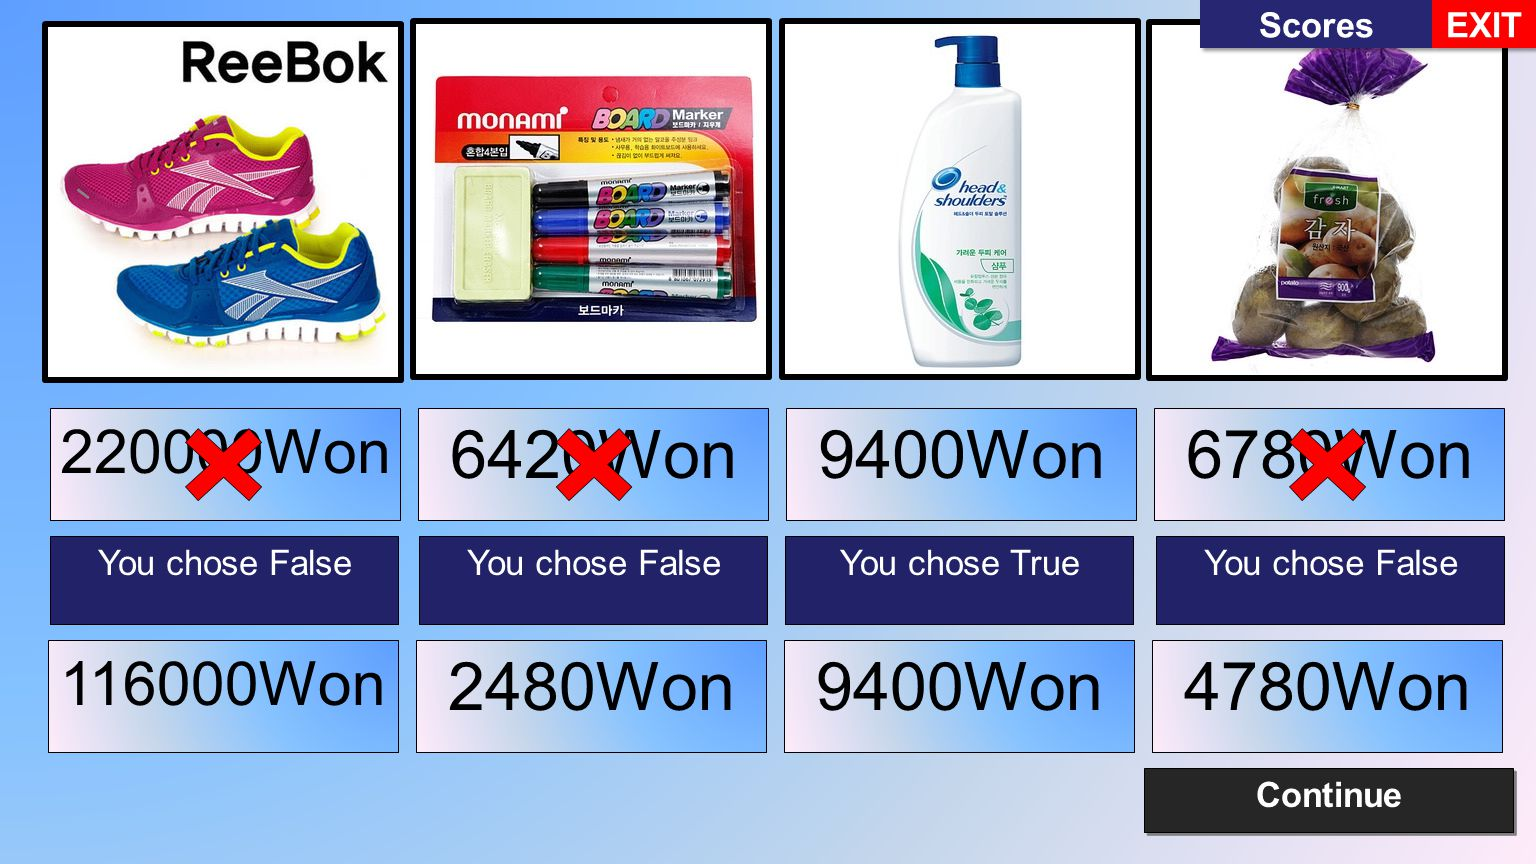 Reebok Realflex Transition Running Shoe 220000Won Monami 4 Board Marker + Eraser Set 6420Won Head and Shoulders Shampoo 850ml 9400Won Emart Potatoes 900g 6780Won FALSETRUEFALSETRUEFALSETRUEFALSETRUE Scores EXIT SUBMIT